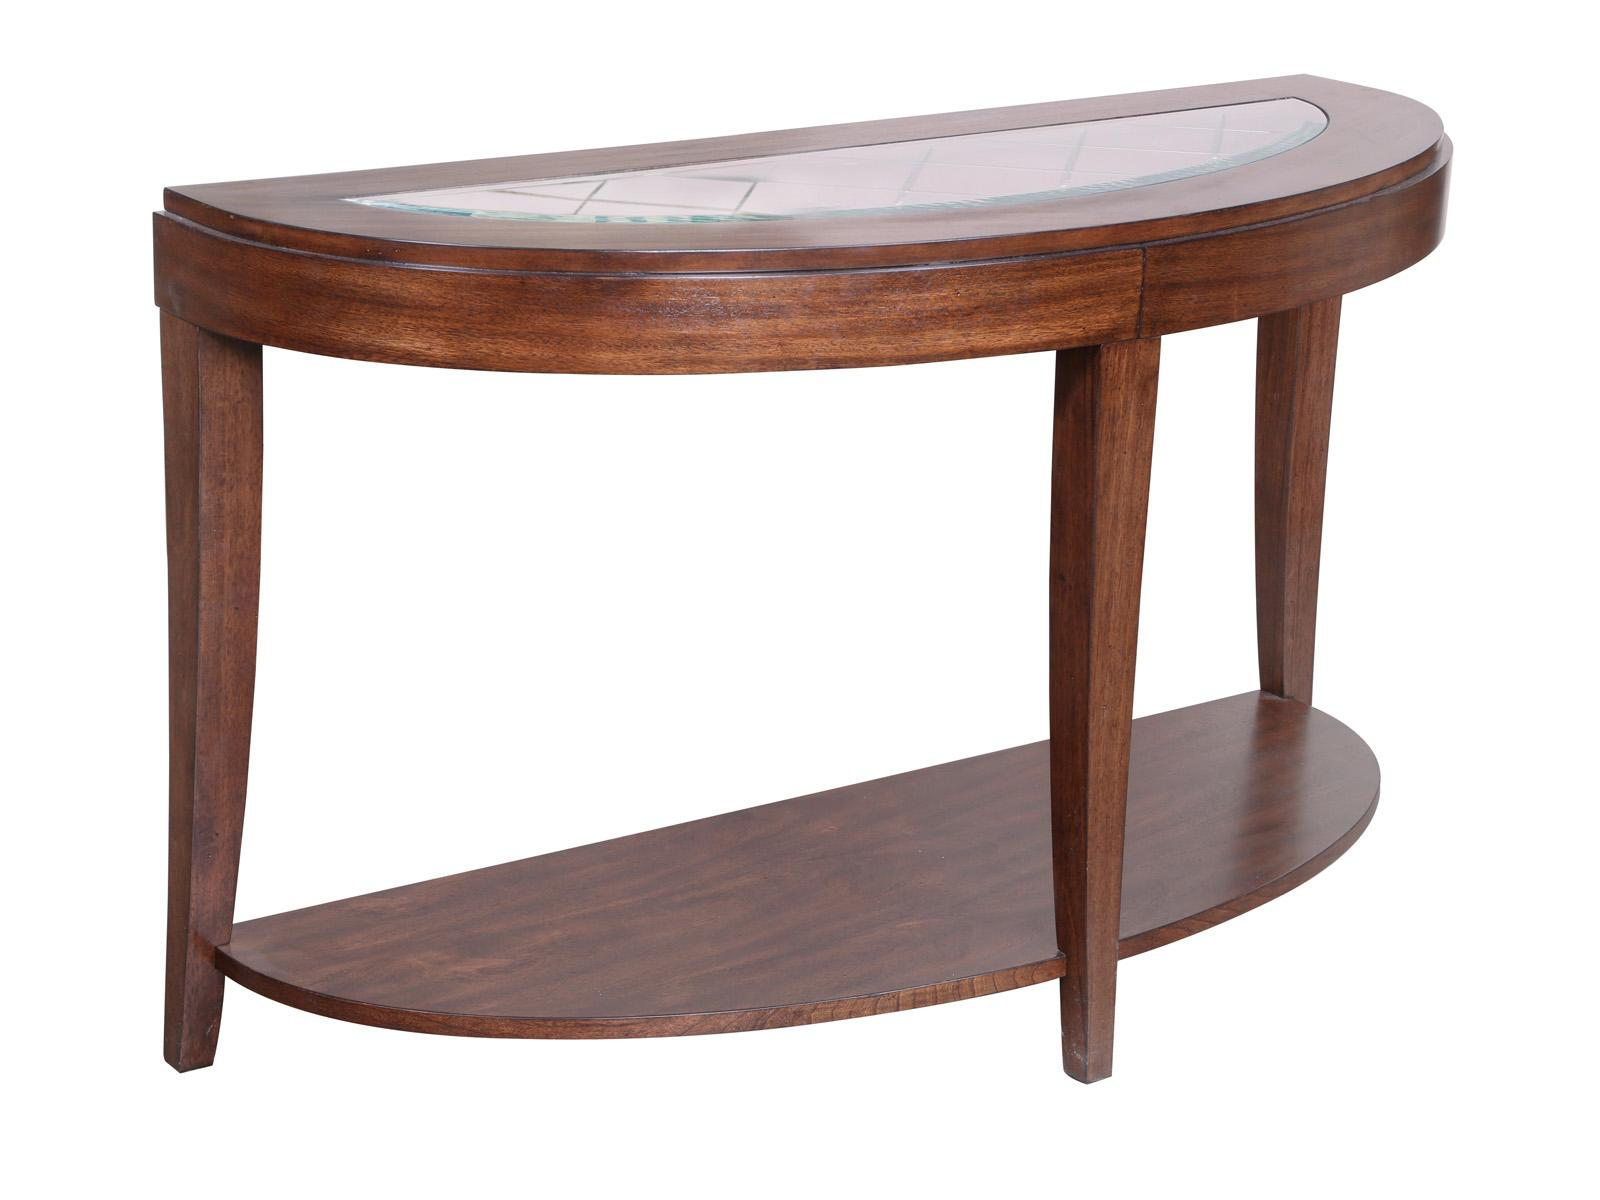 Magnussen Home Keaton Demilune Sofa Table - Item Number: T2536-75